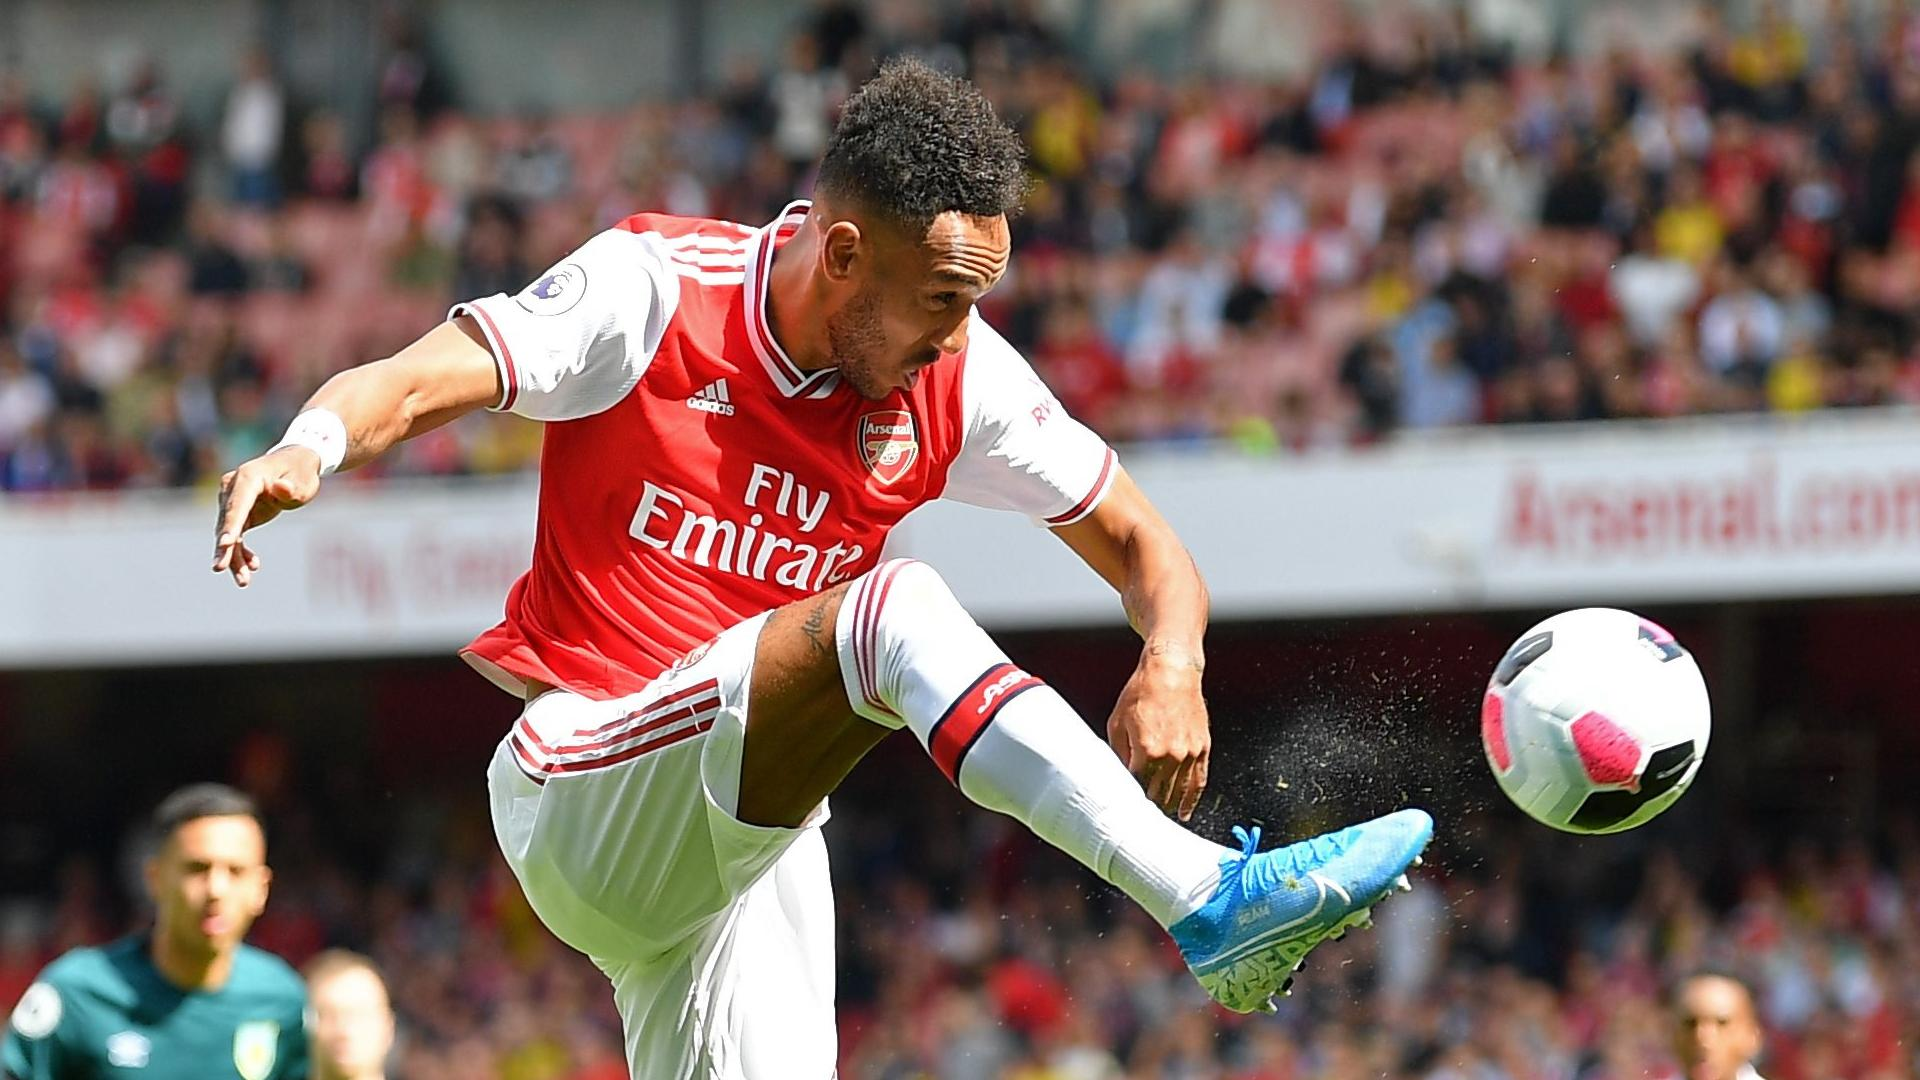 Pierre-Emerick Aubameyang sets Arsenal target for 2019-20 season